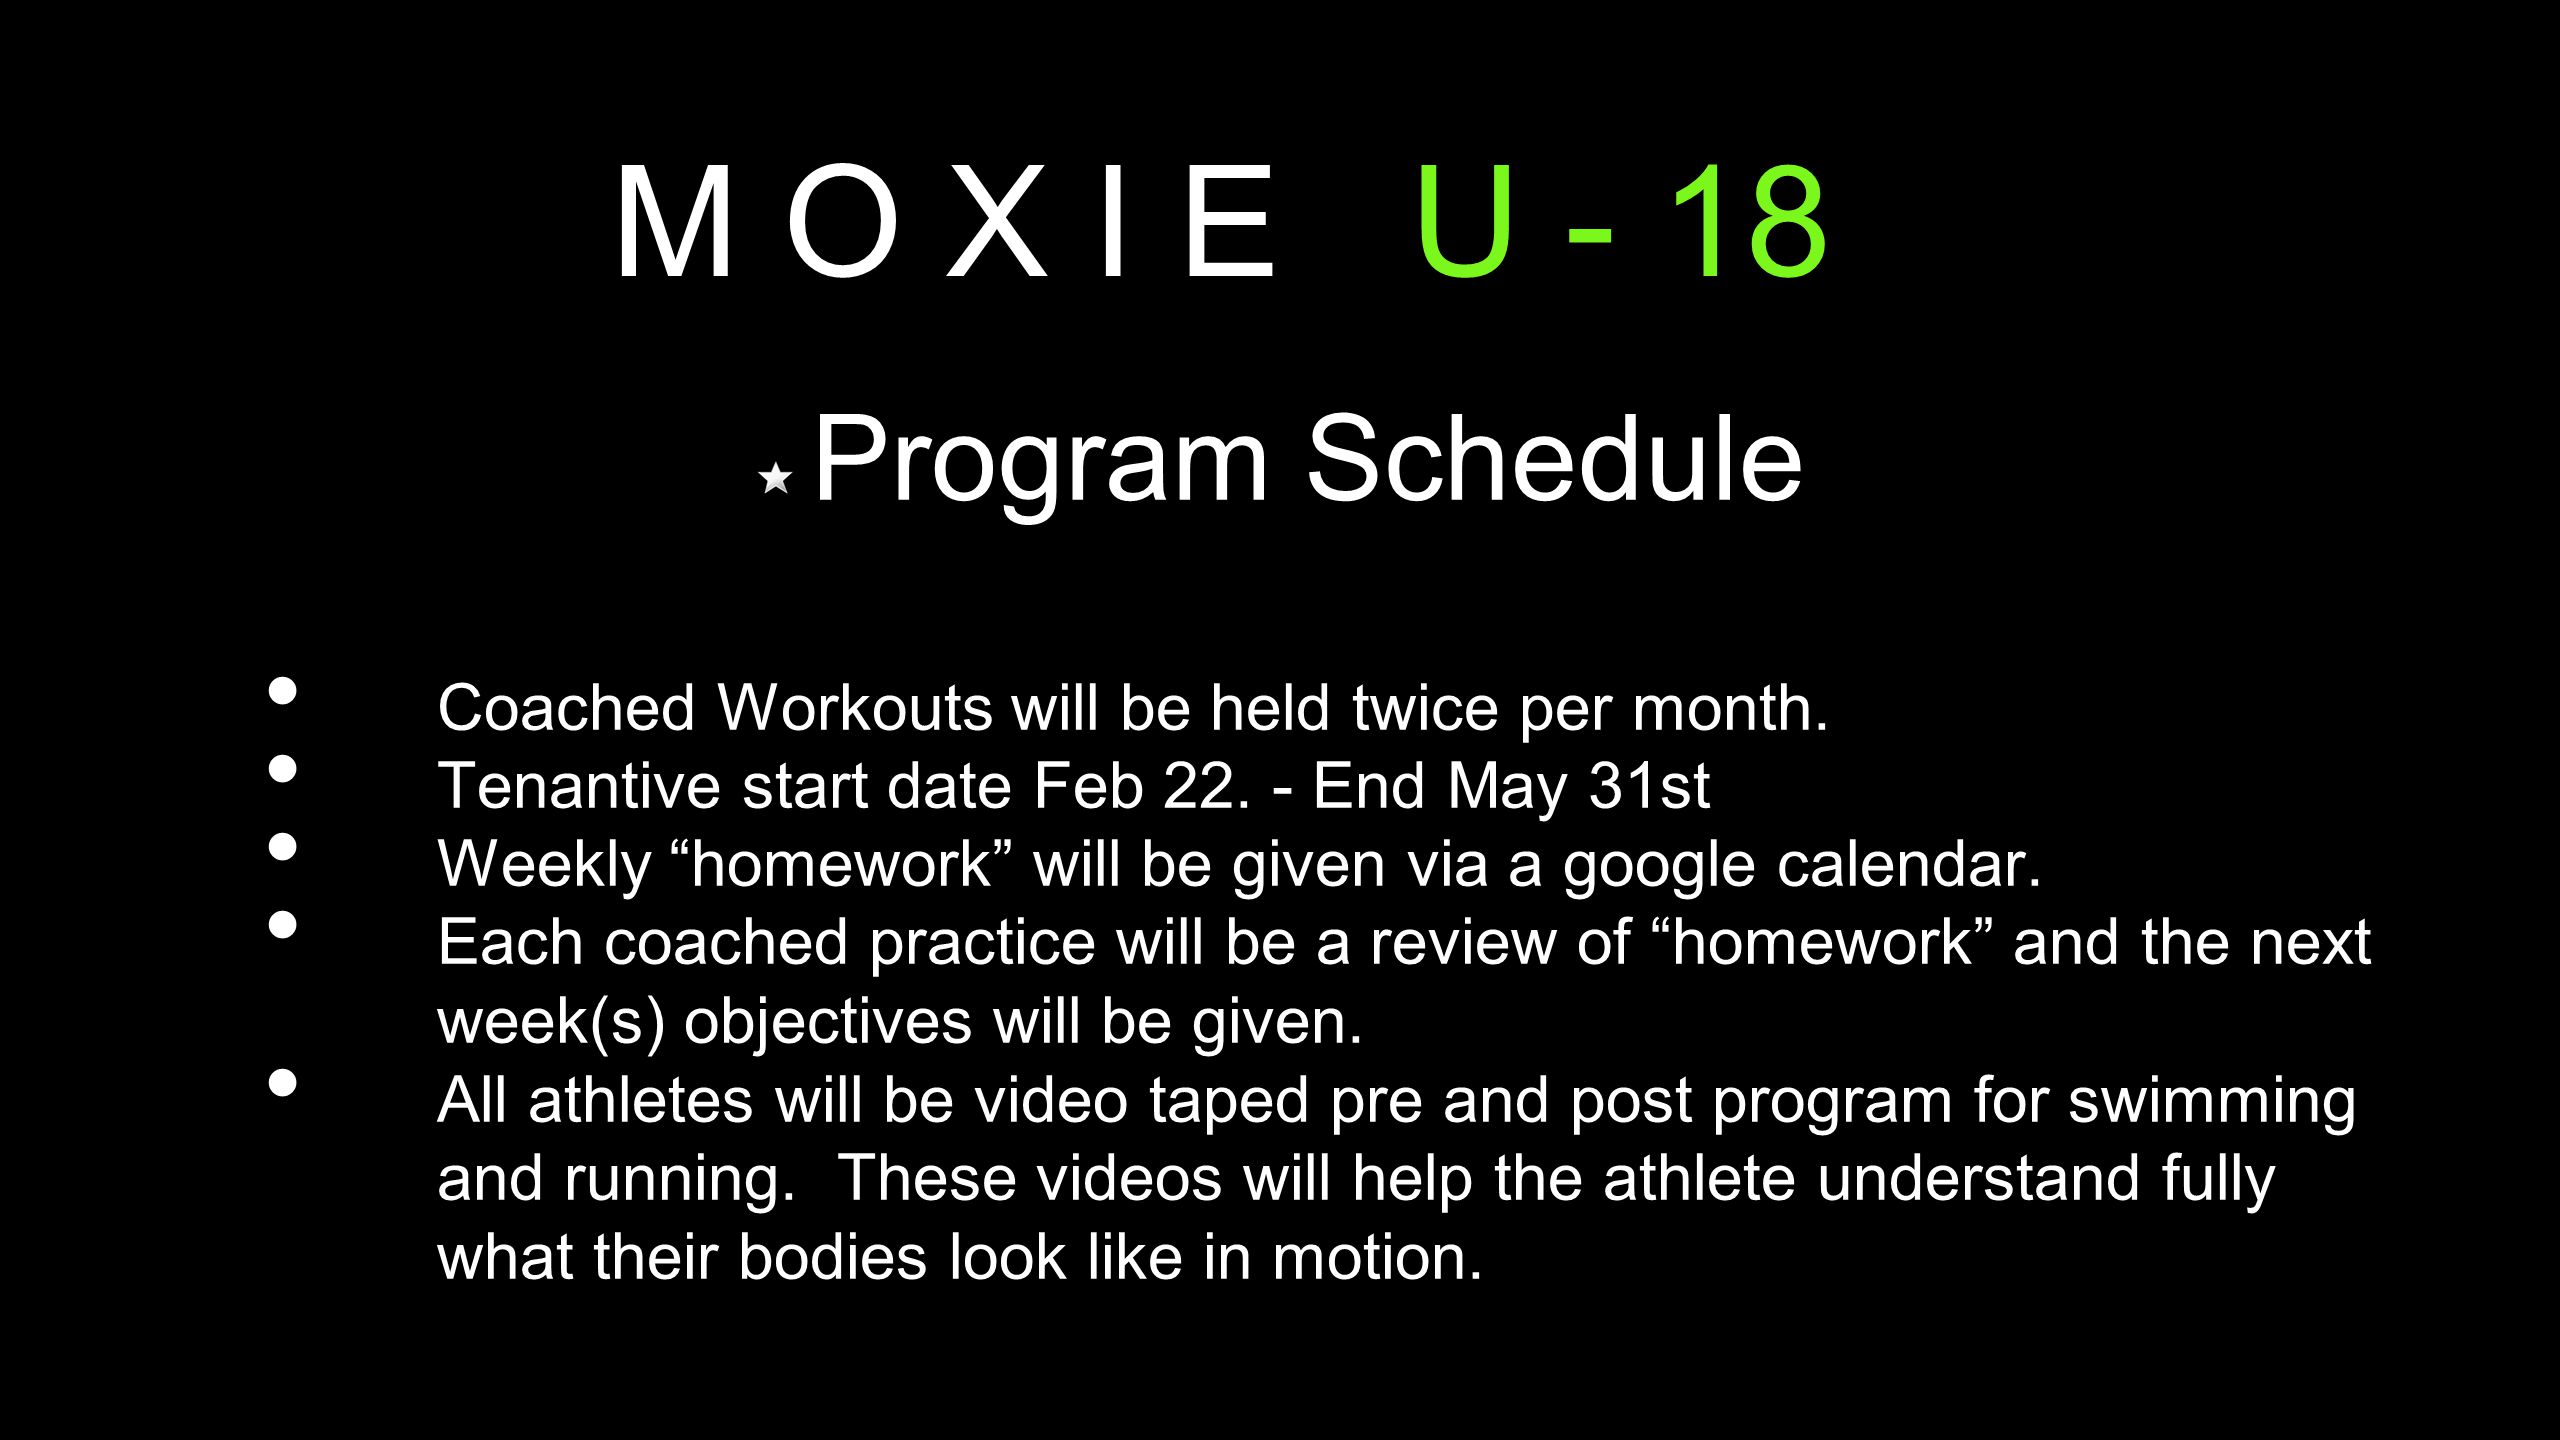 M O X I E U - 18 Program Schedule Coached Workouts will be held twice per month.